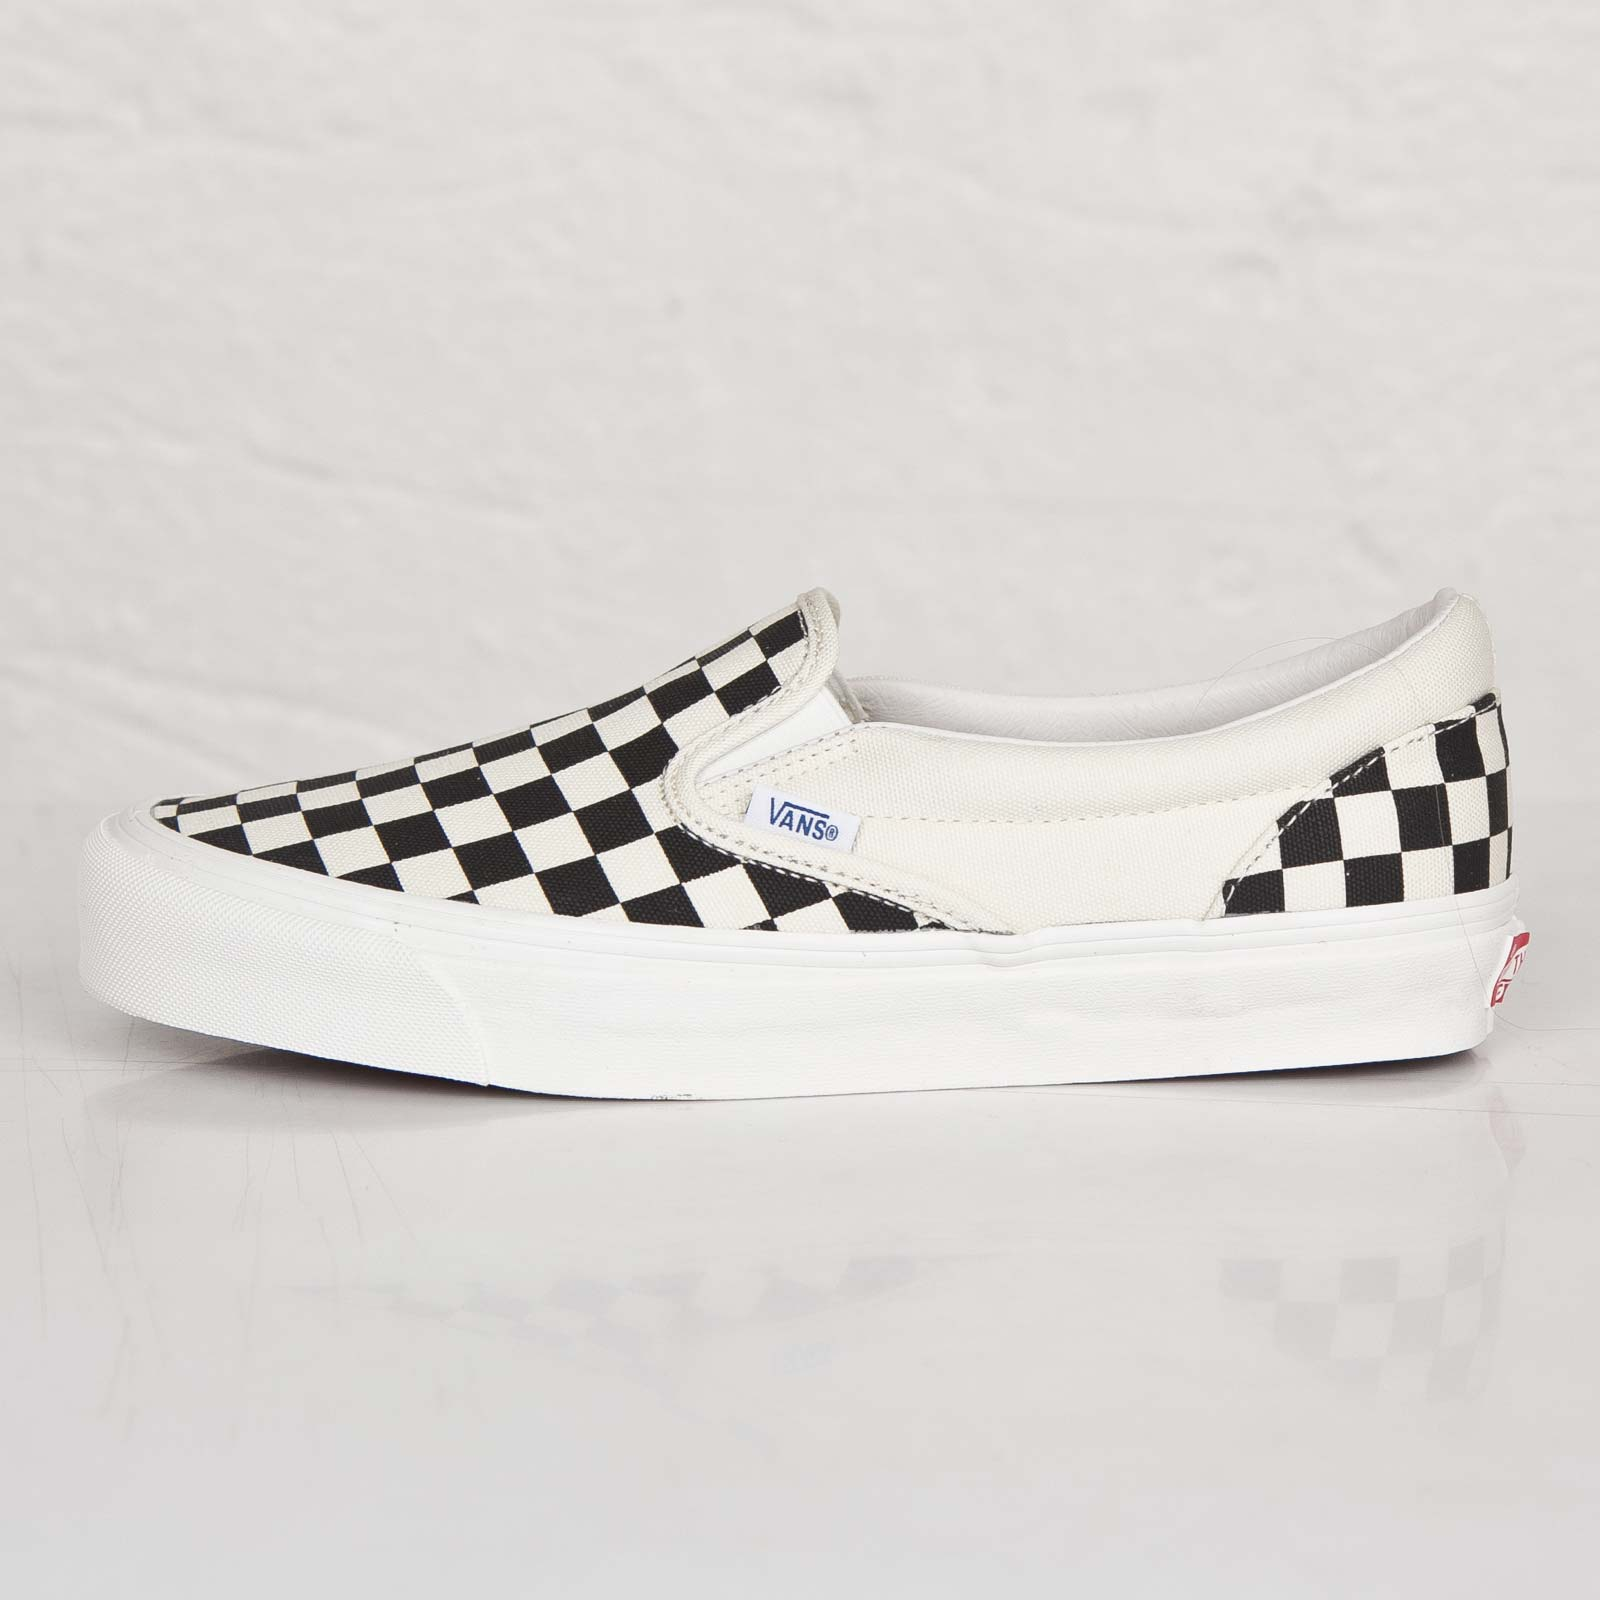 billiga vans slip on